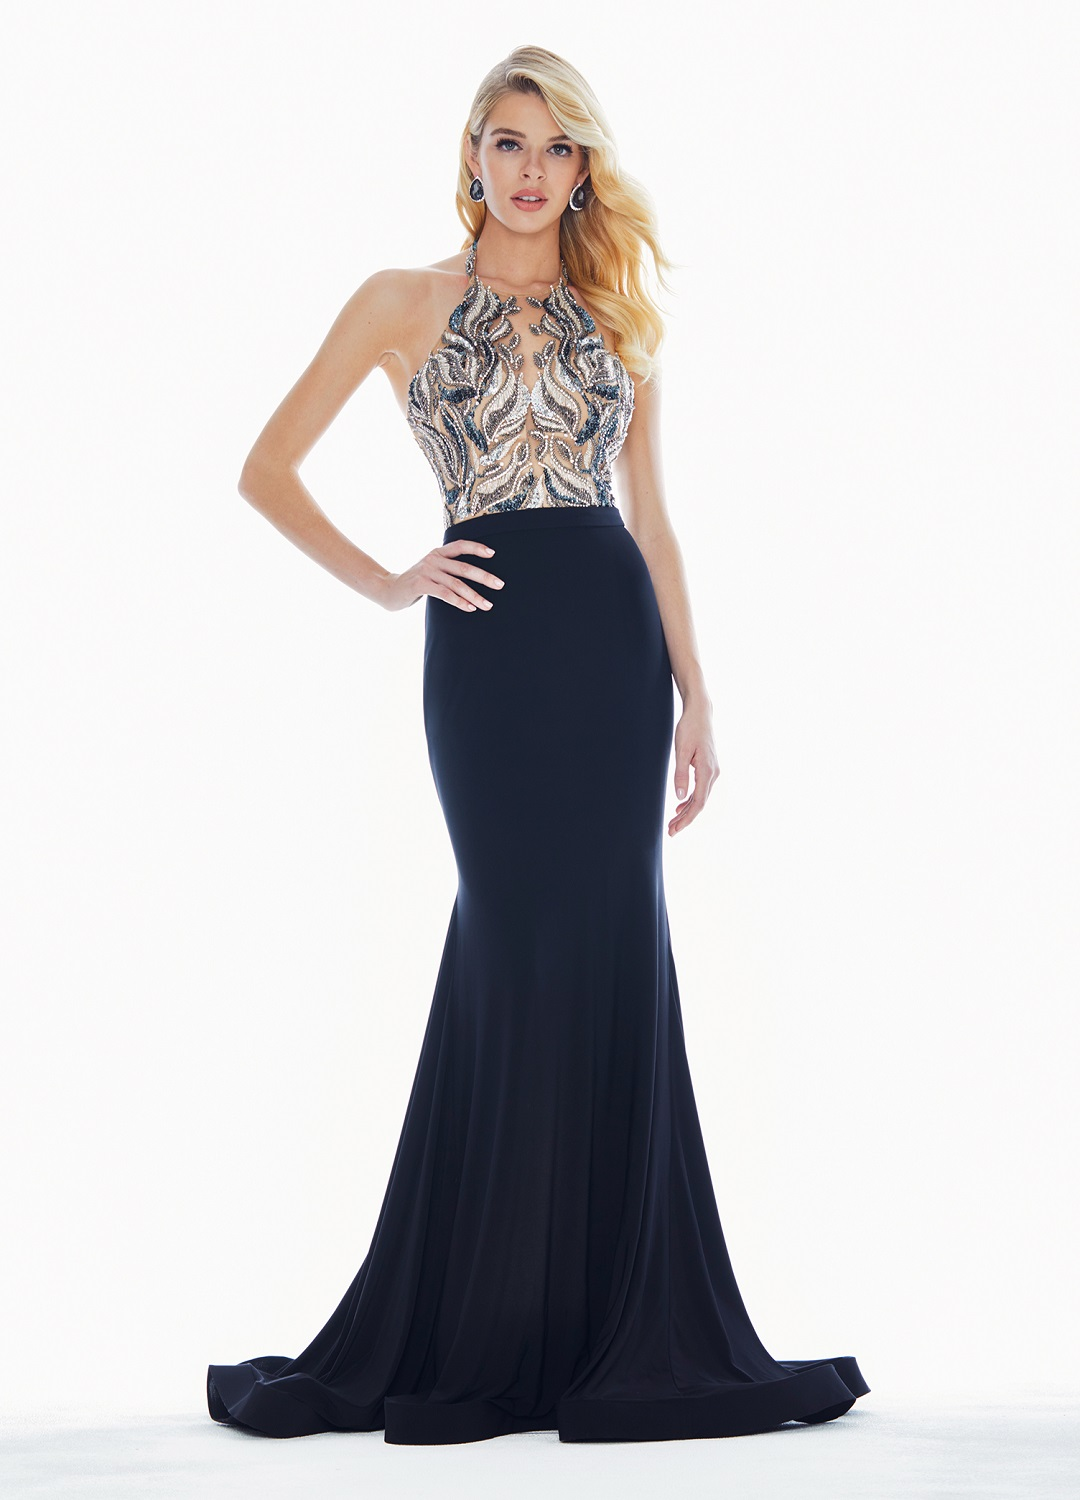 Ashley Lauren 1362 Black Beaded Halter Formal Dress